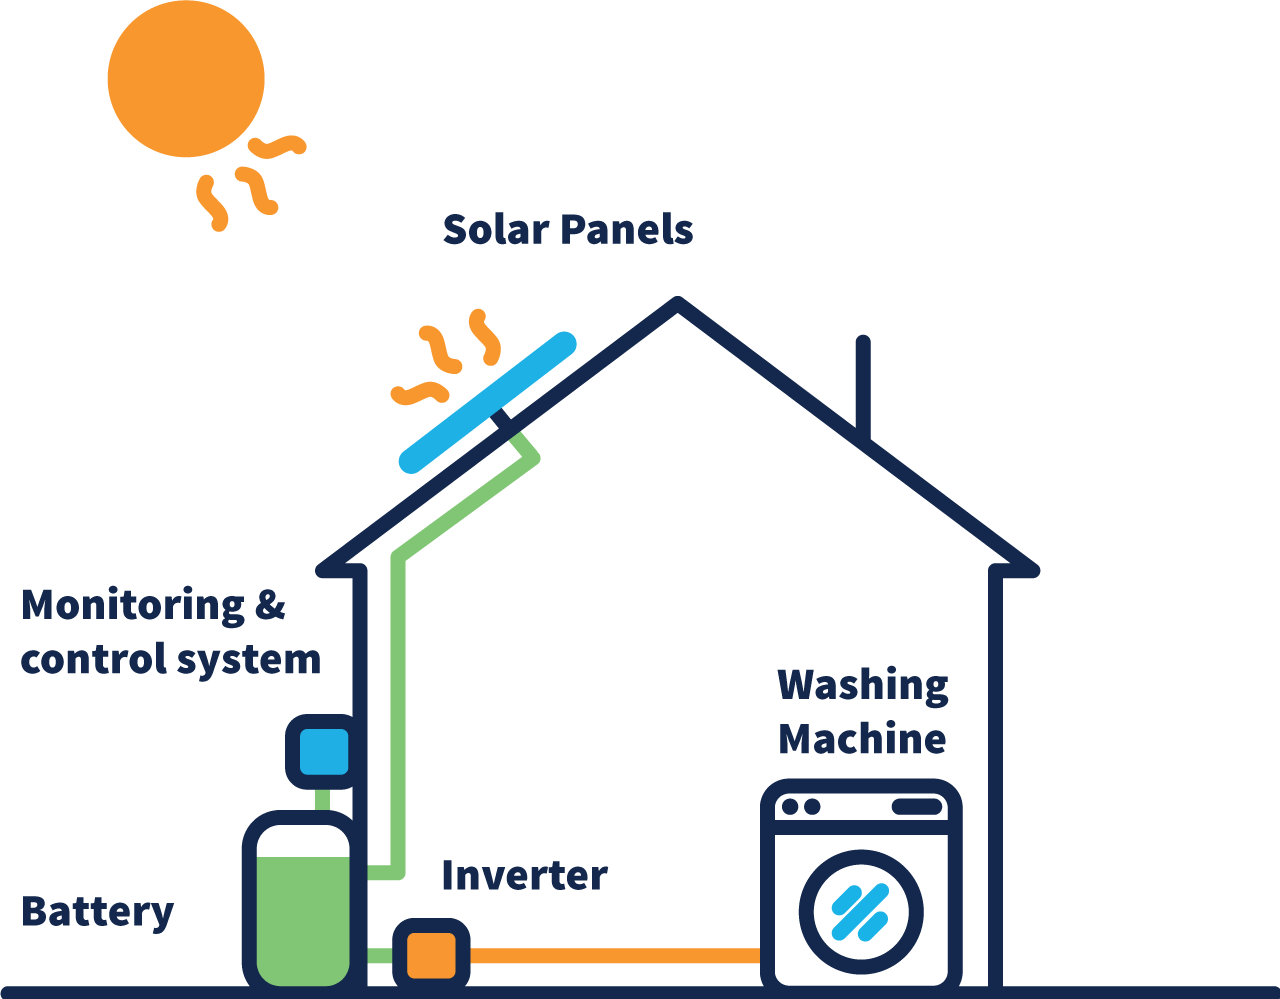 A diagram depicts a home situated with a solar panel on its roof. The Sun is positioned above the solar panel. Cabling runs from the panels on the roof to a battery and monitoring system positioned on the ground. The battery is connect to an inverter that turns the green path of electricity to orange. This orange path connects to a washing machine, providing is solar power to run.